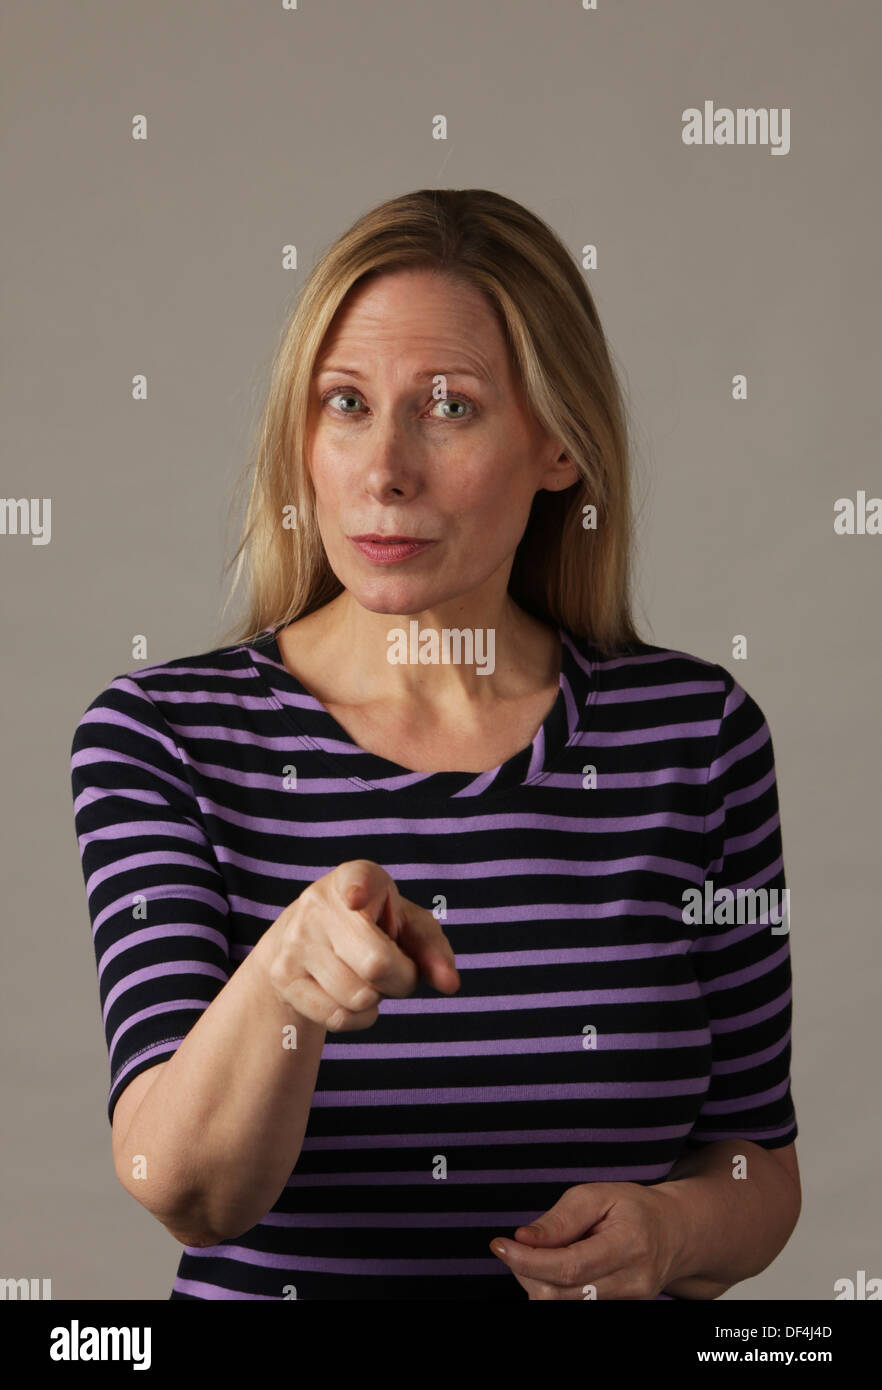 Stern and serious attractive middle aged woman pointing and